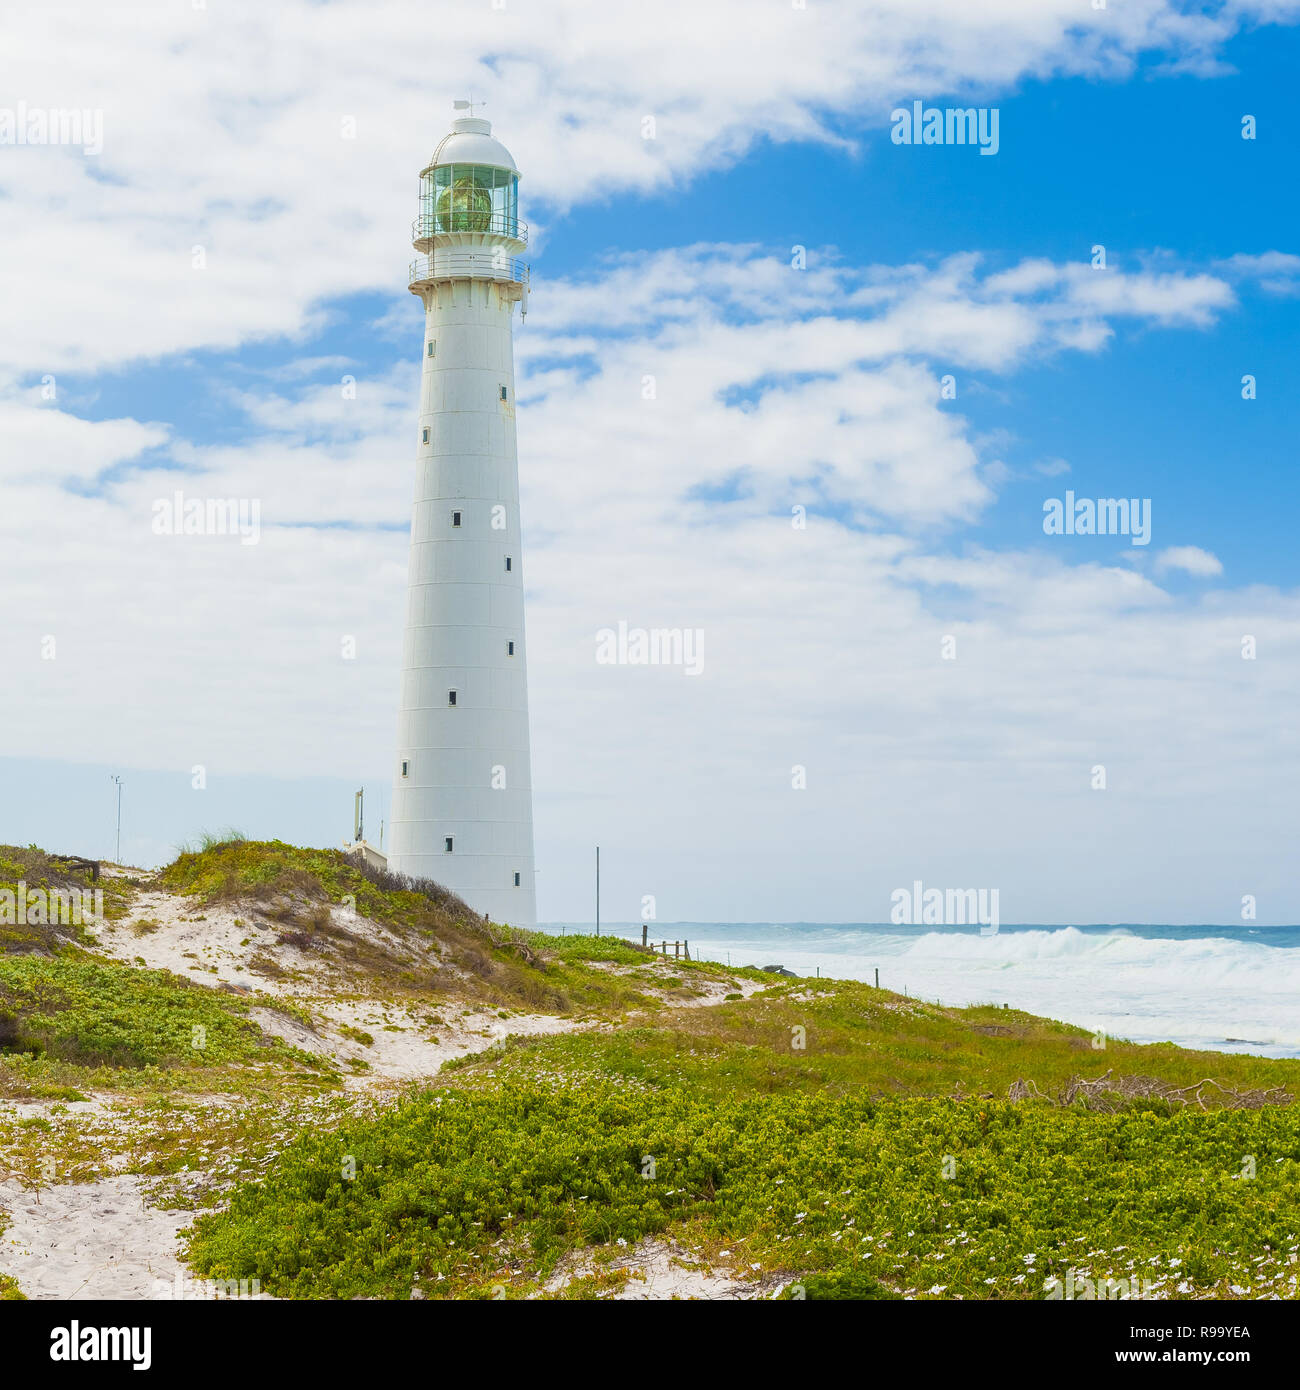 Lighthouse on the rugged Cape Town South Africa coastline during the day - Stock Image